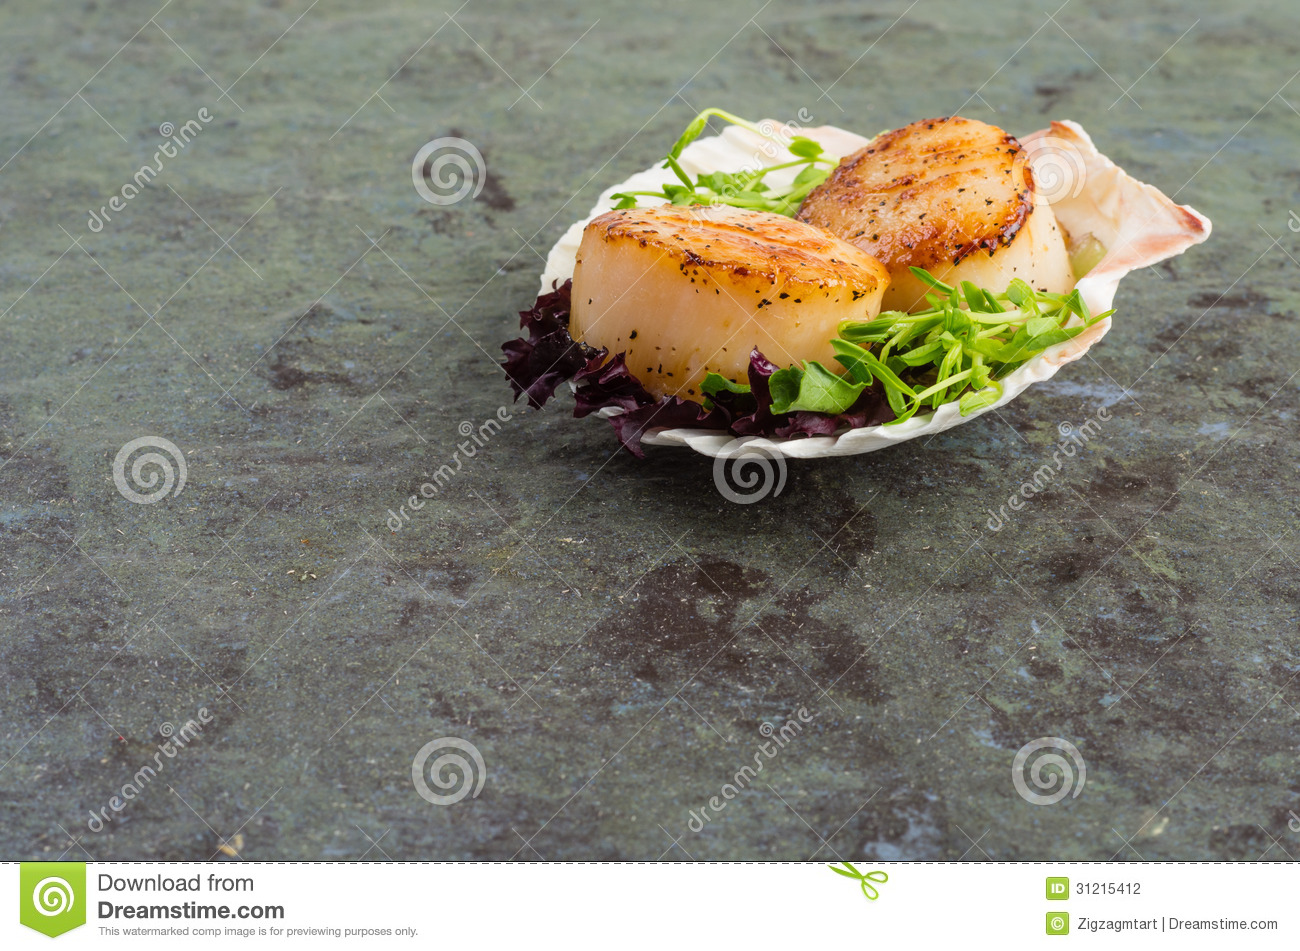 how to prepare scallops in shell